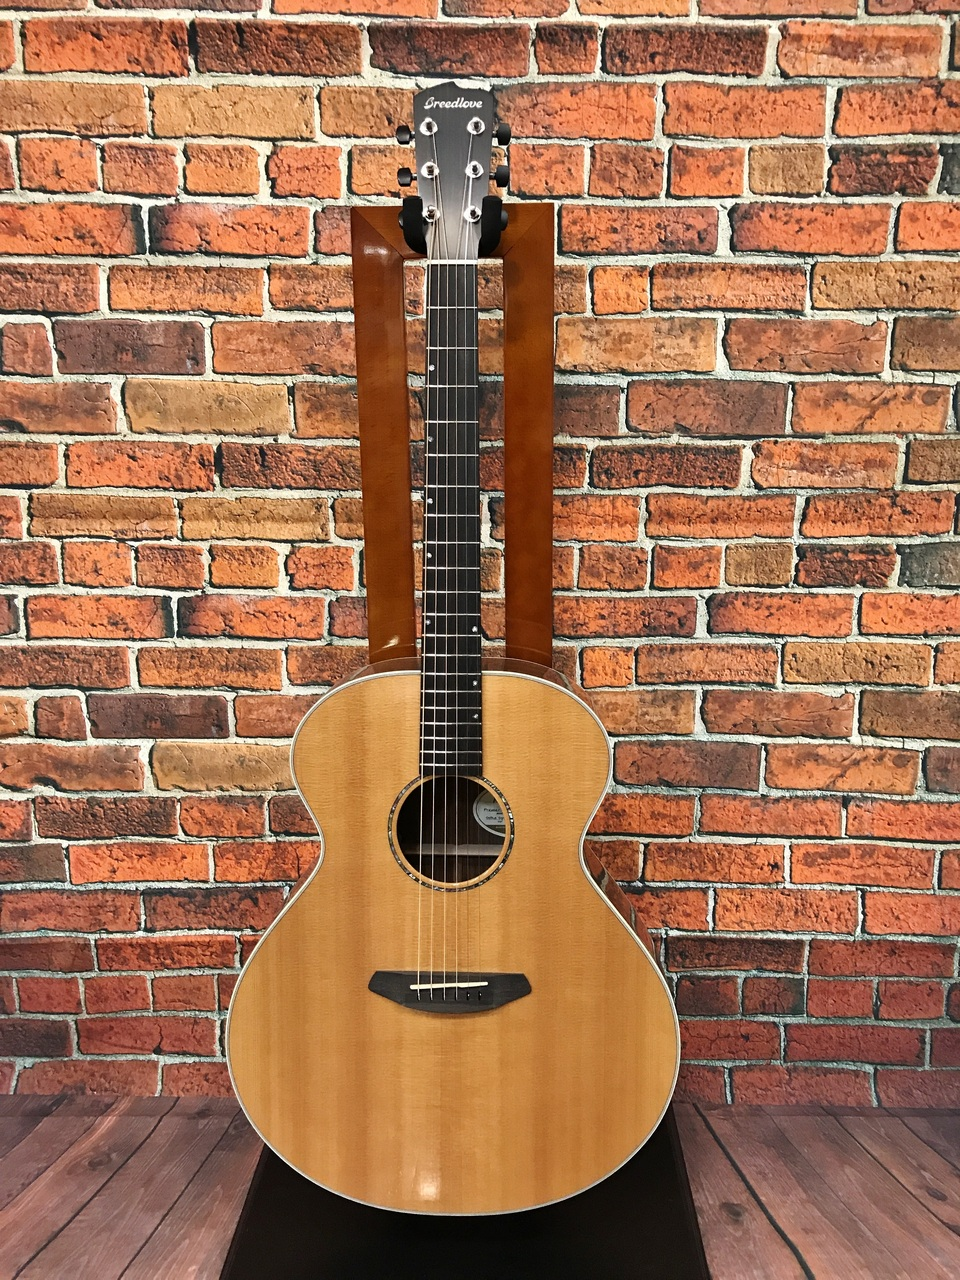 Breedlove Premier Series J22E Outlet Specials] [production completion model]